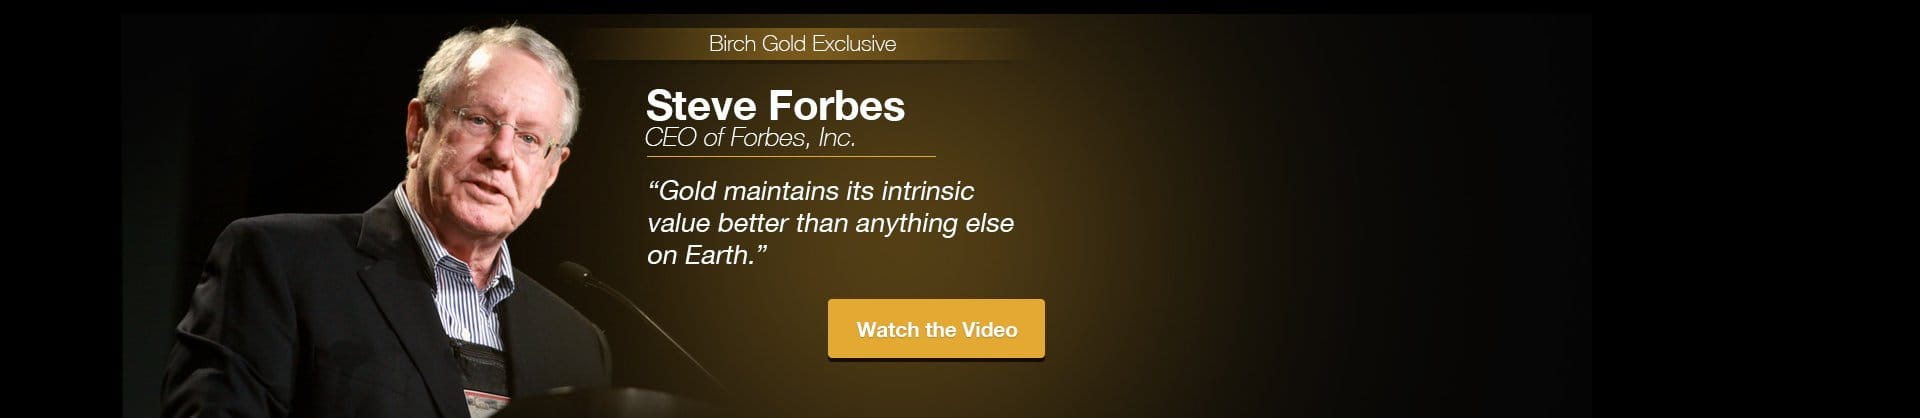 steve forbes gold maintains its intrinsic value better than anything on earth